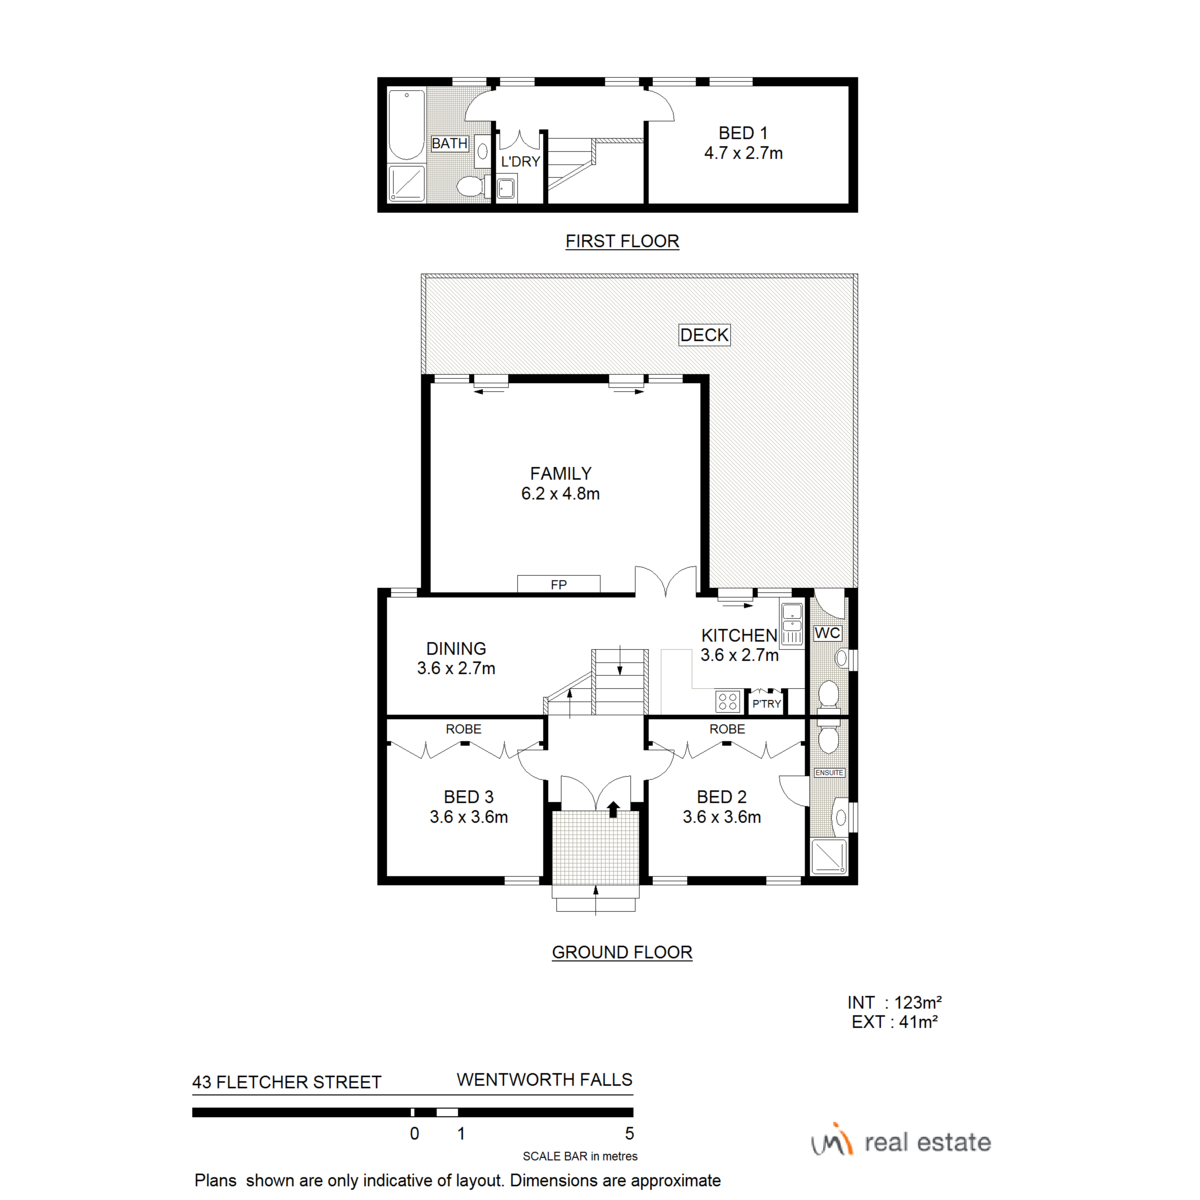 43 fletcher street wentworth falls nsw 2782 umi real estate for Floor plans 761 bay street